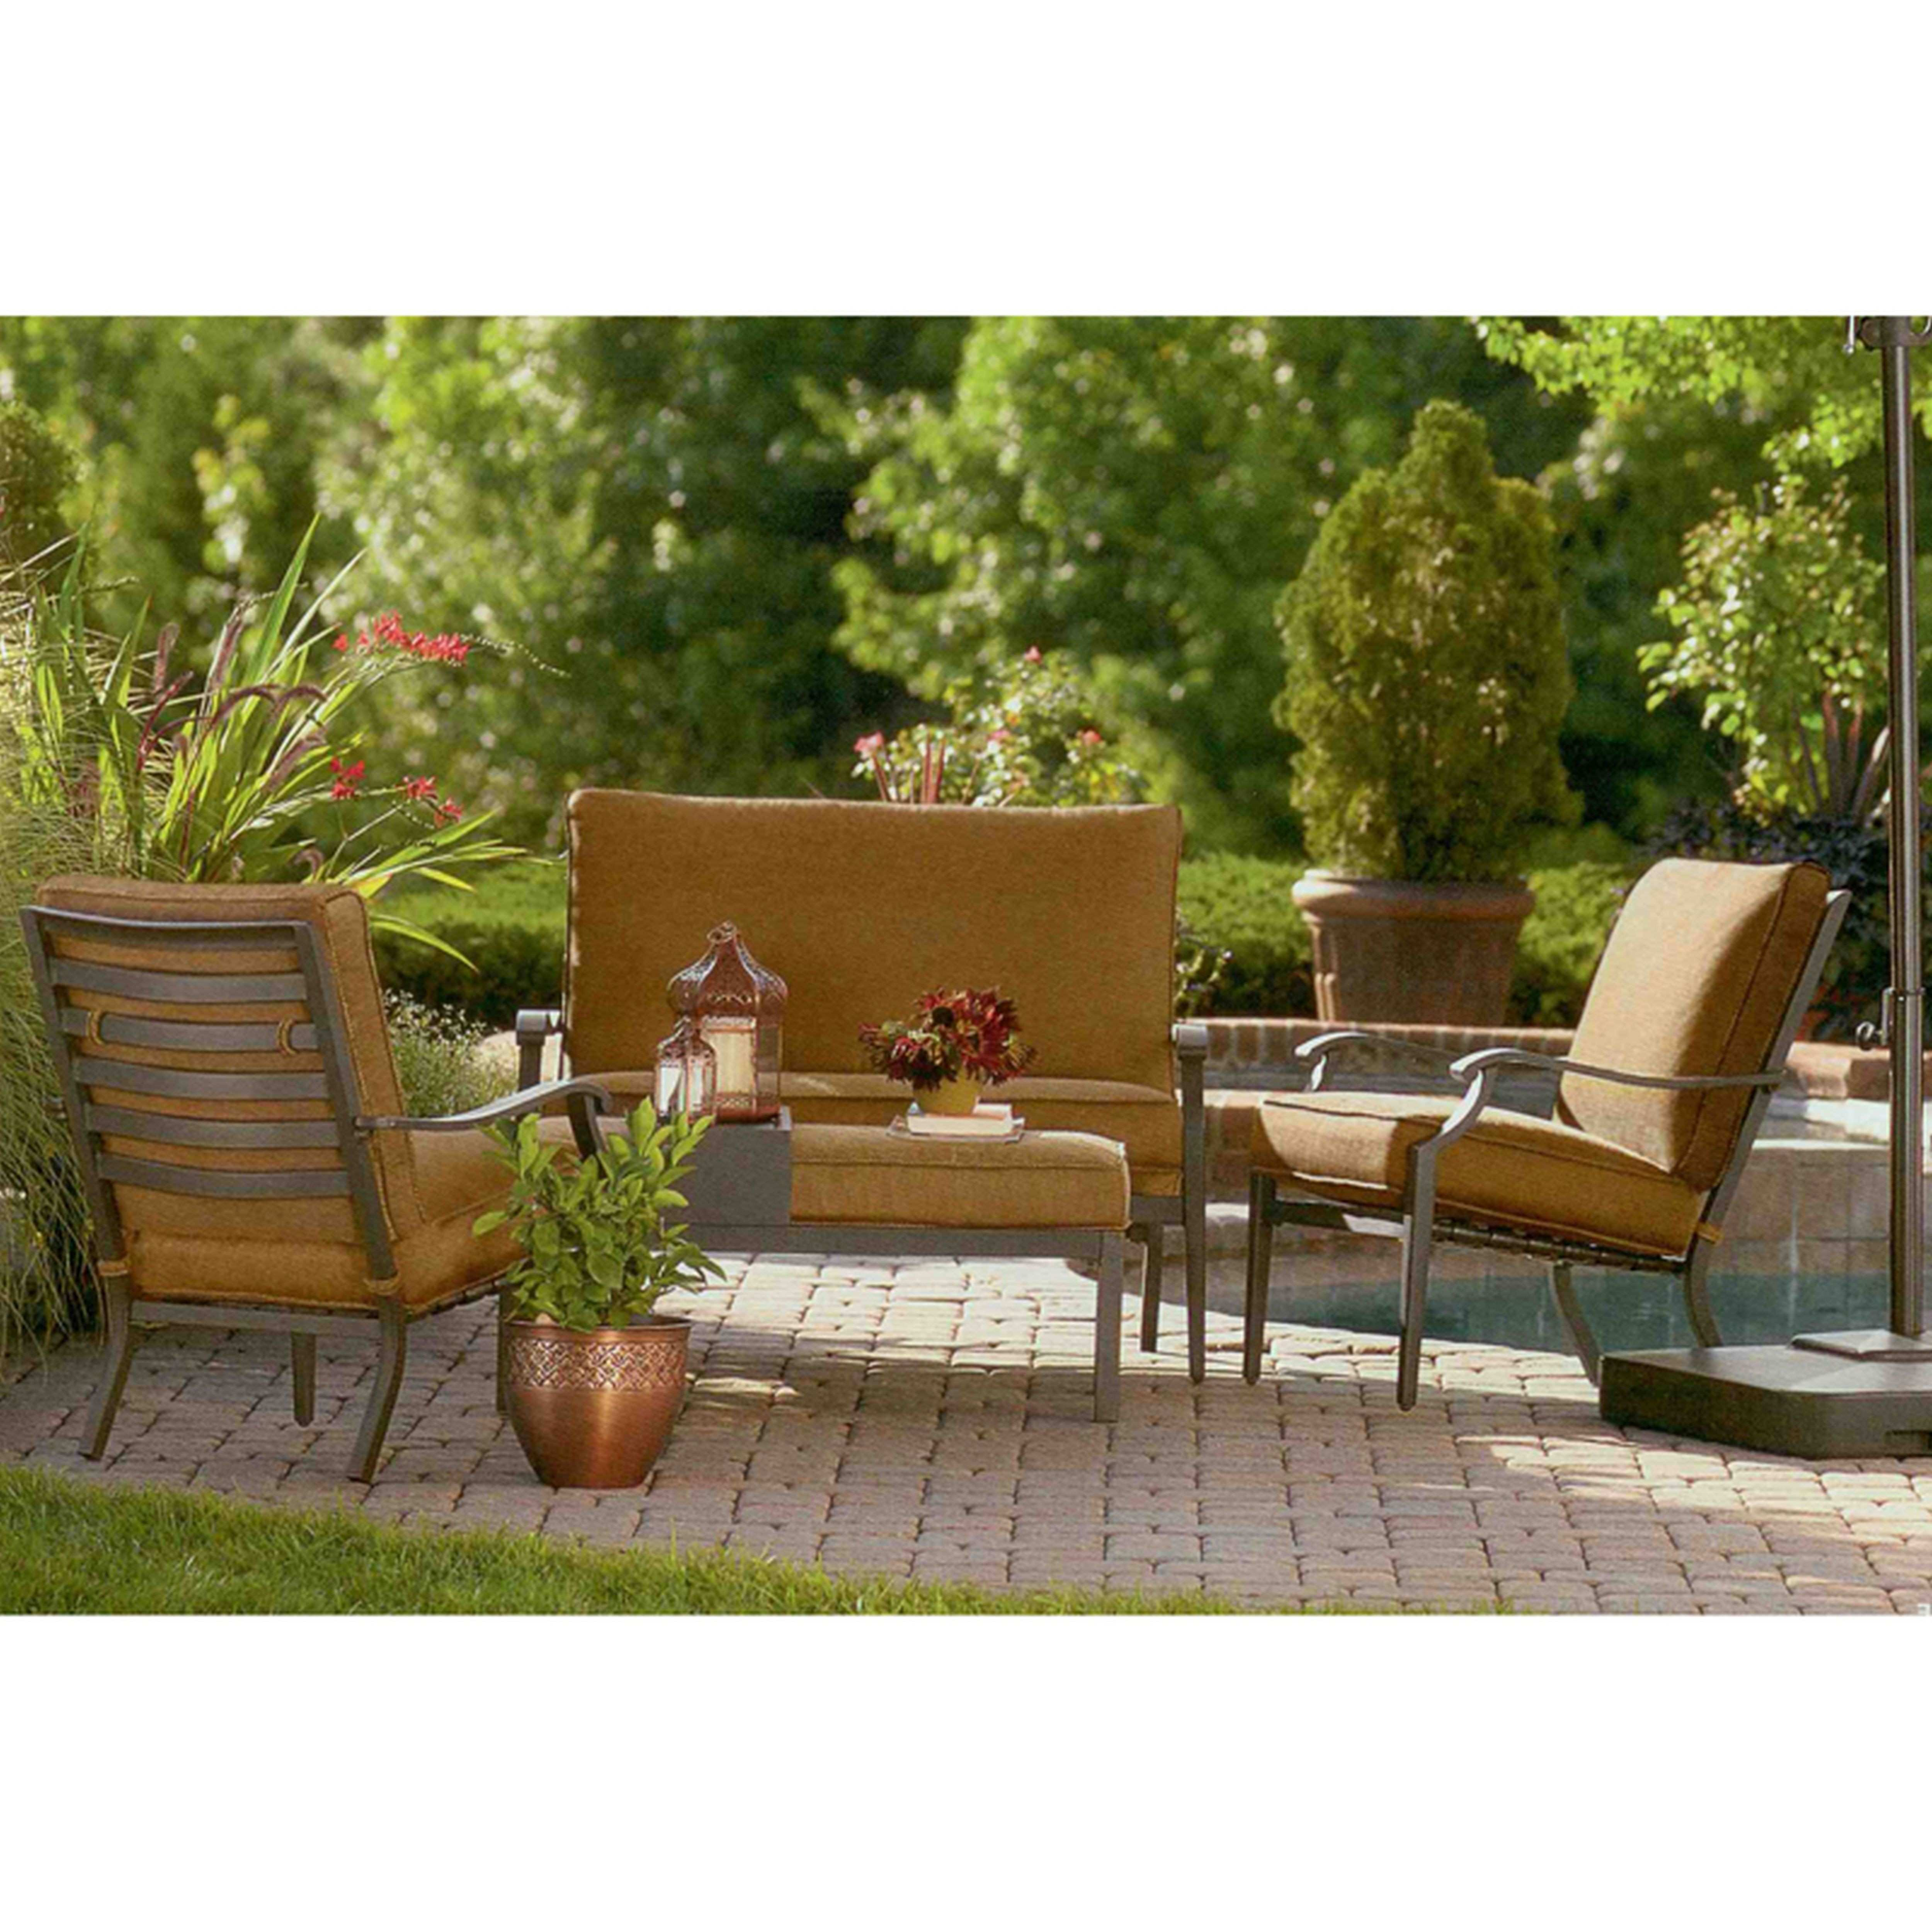 Outdoor Furnitures How To Make Chair Cushions With Piping Awesome